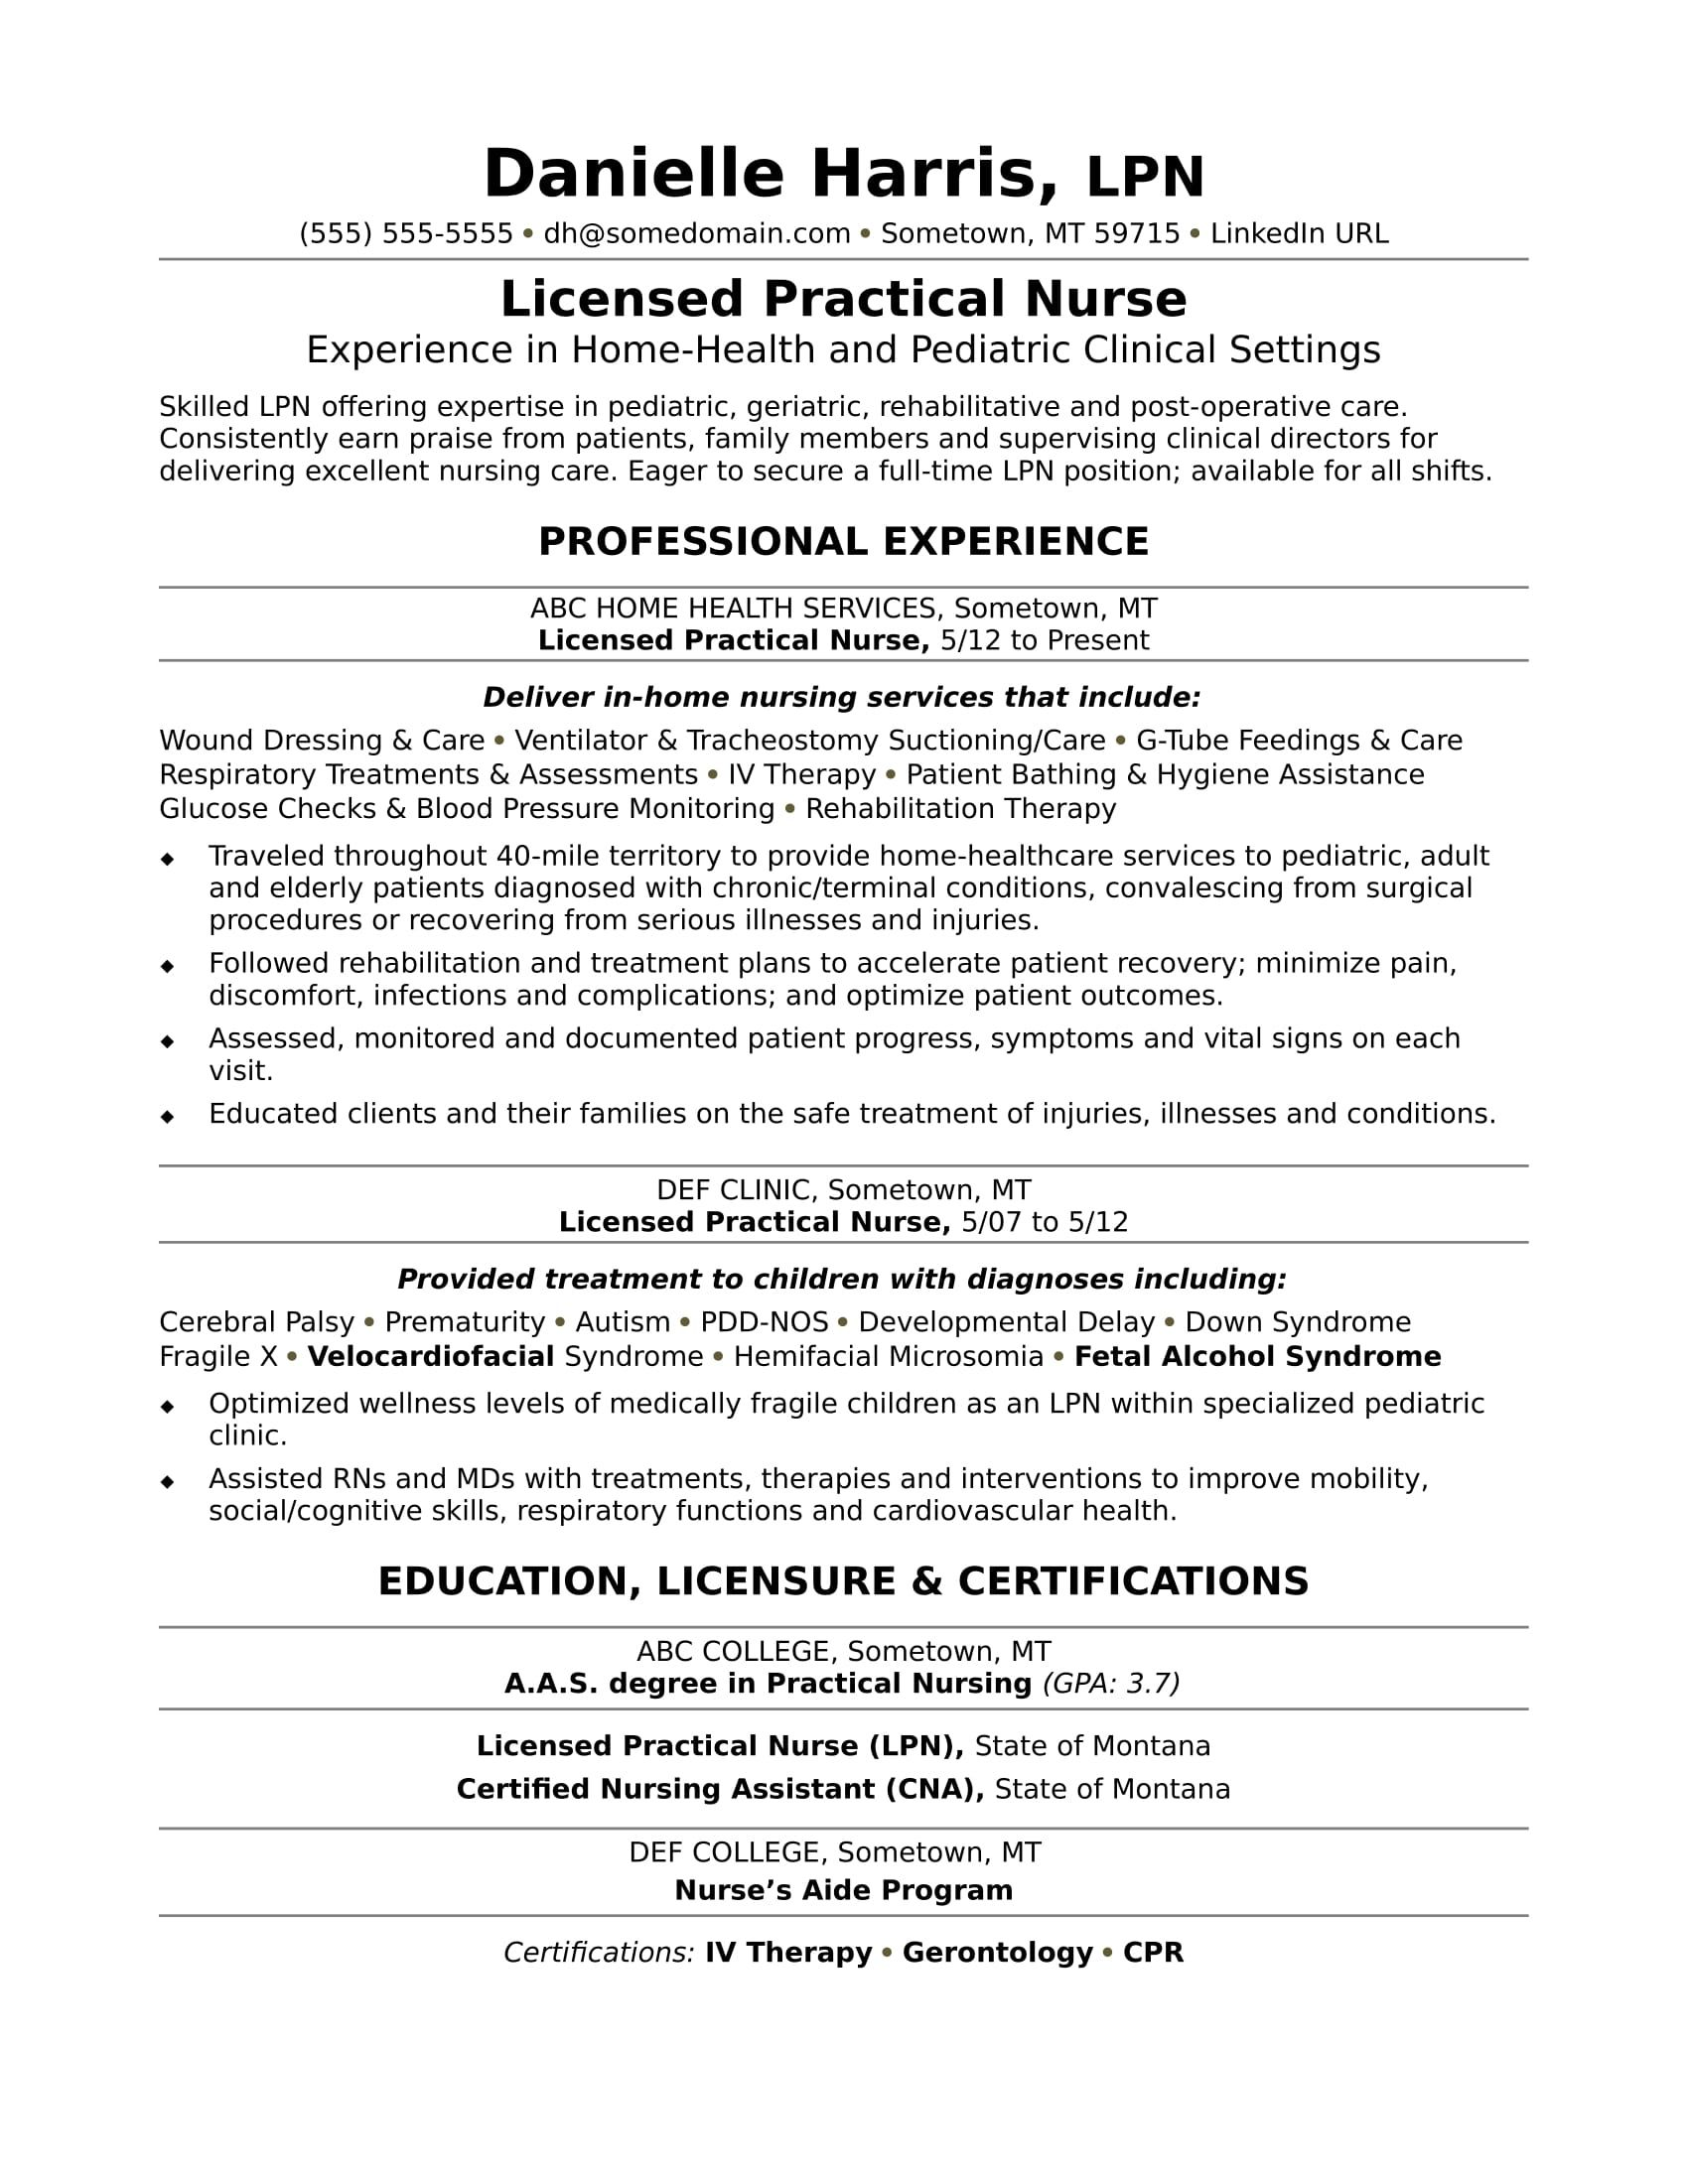 licensed practical nurse essay Entery essay for registered nurse program (becoming a surgical nurse too) mstheophile  that is when i received my license practitioner nurse (lpn) certification, in the year of 2000 i came from being a certified nurse assistant to working as a field nurse, assessing the needs of the patients, providing direct patient care and also keeping.